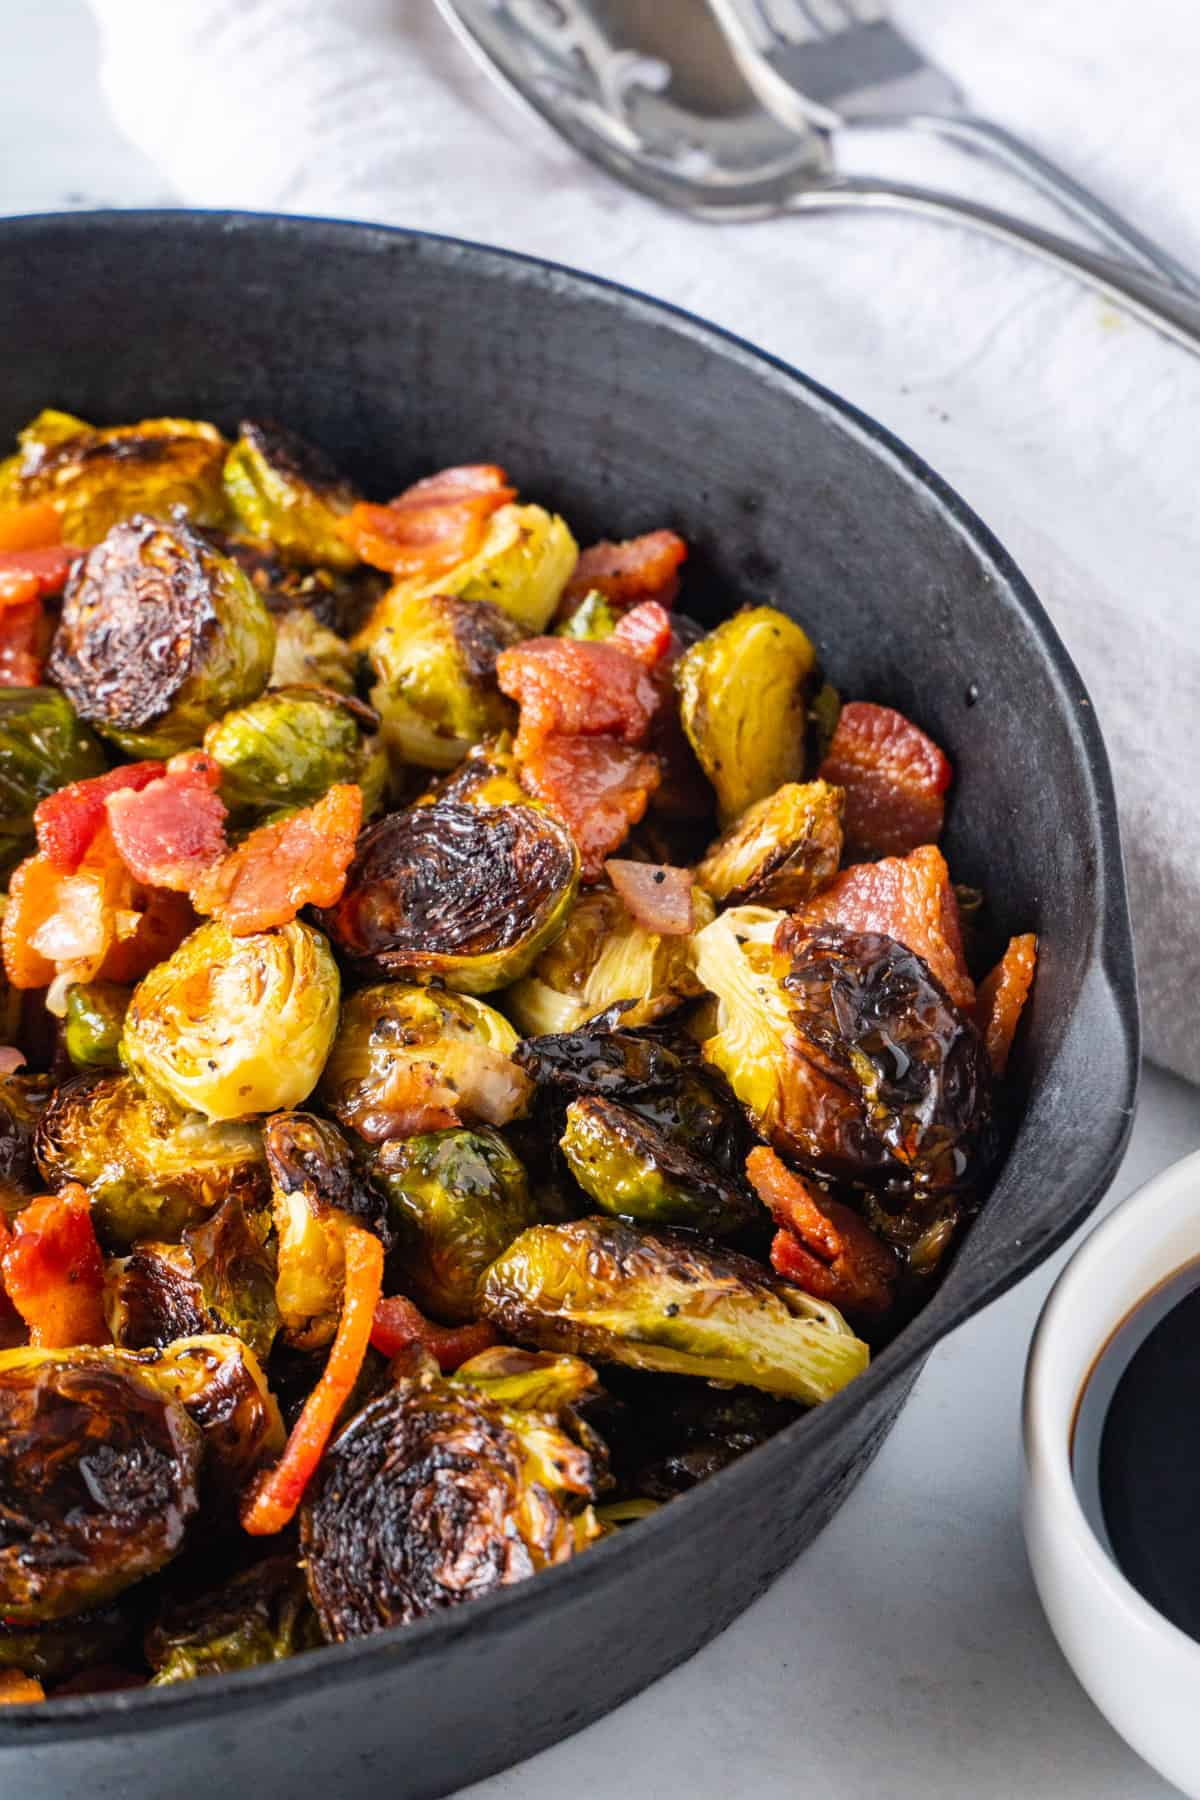 Brussel Sprouts in a Cast Iron